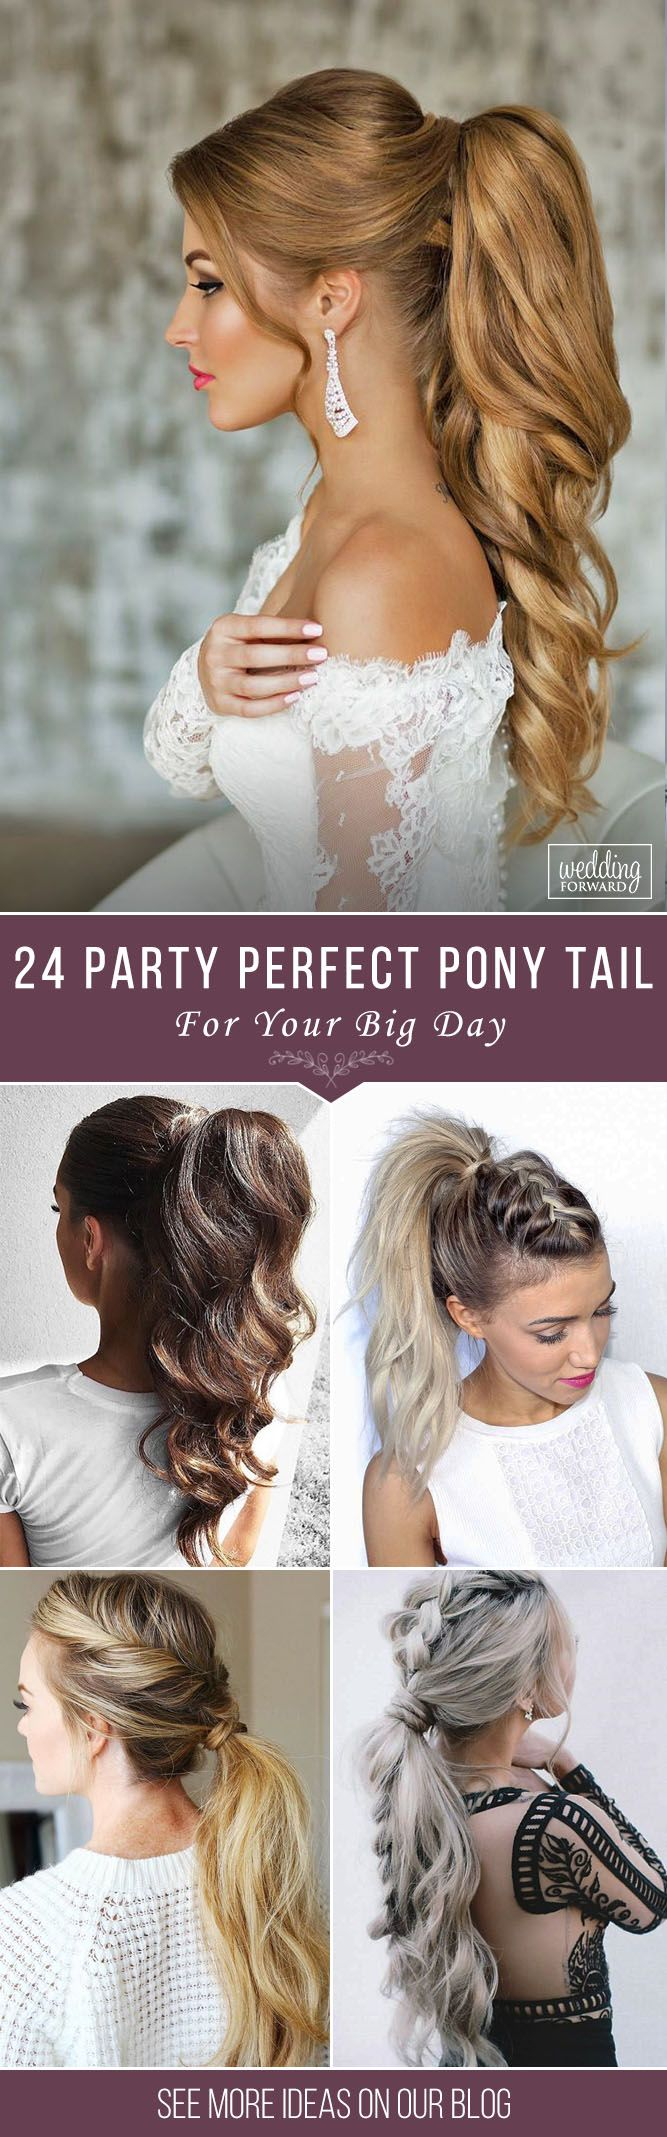 24 Party Perfect Pony Tail Hairstyles For Your Big Day ❤ Pony tail hairstyles ...